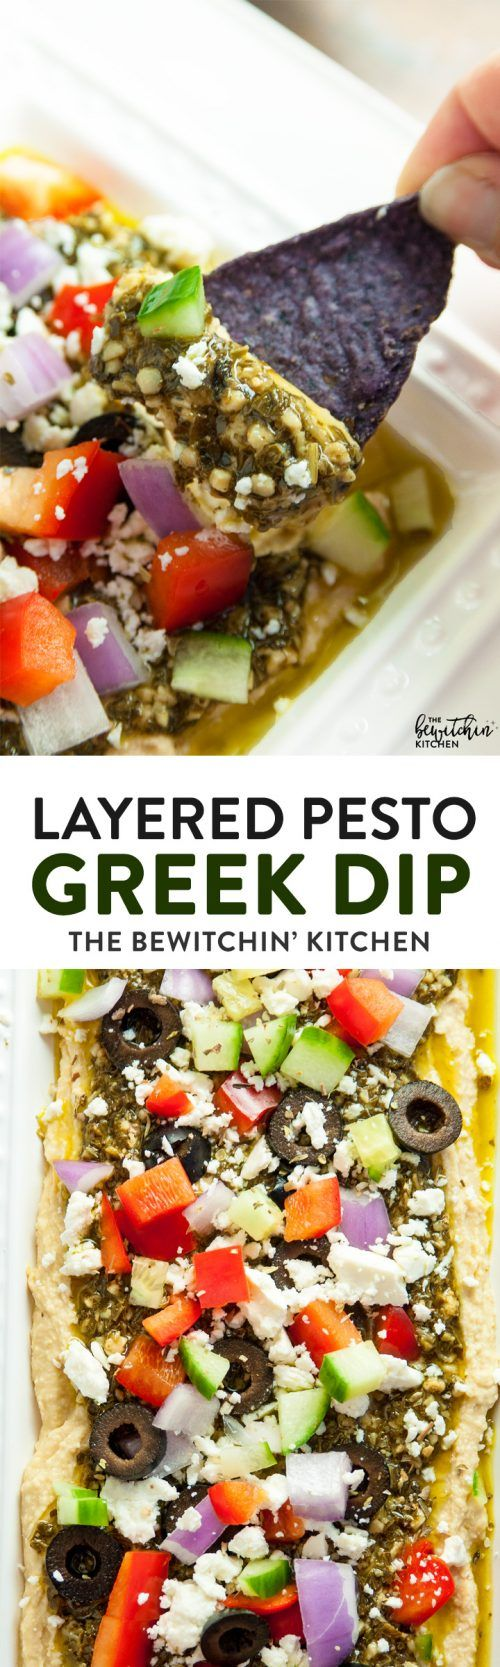 Layered Pesto Greek Dip - EASIEST DIP RECIPE EVER! This Mediterranean inspired appetizer uses hummus, pesto, feta, peppers, olives, and cucumbers. Goes great with veggies and chips. 21 Day Fix approved and a healthy appetizer recipe.